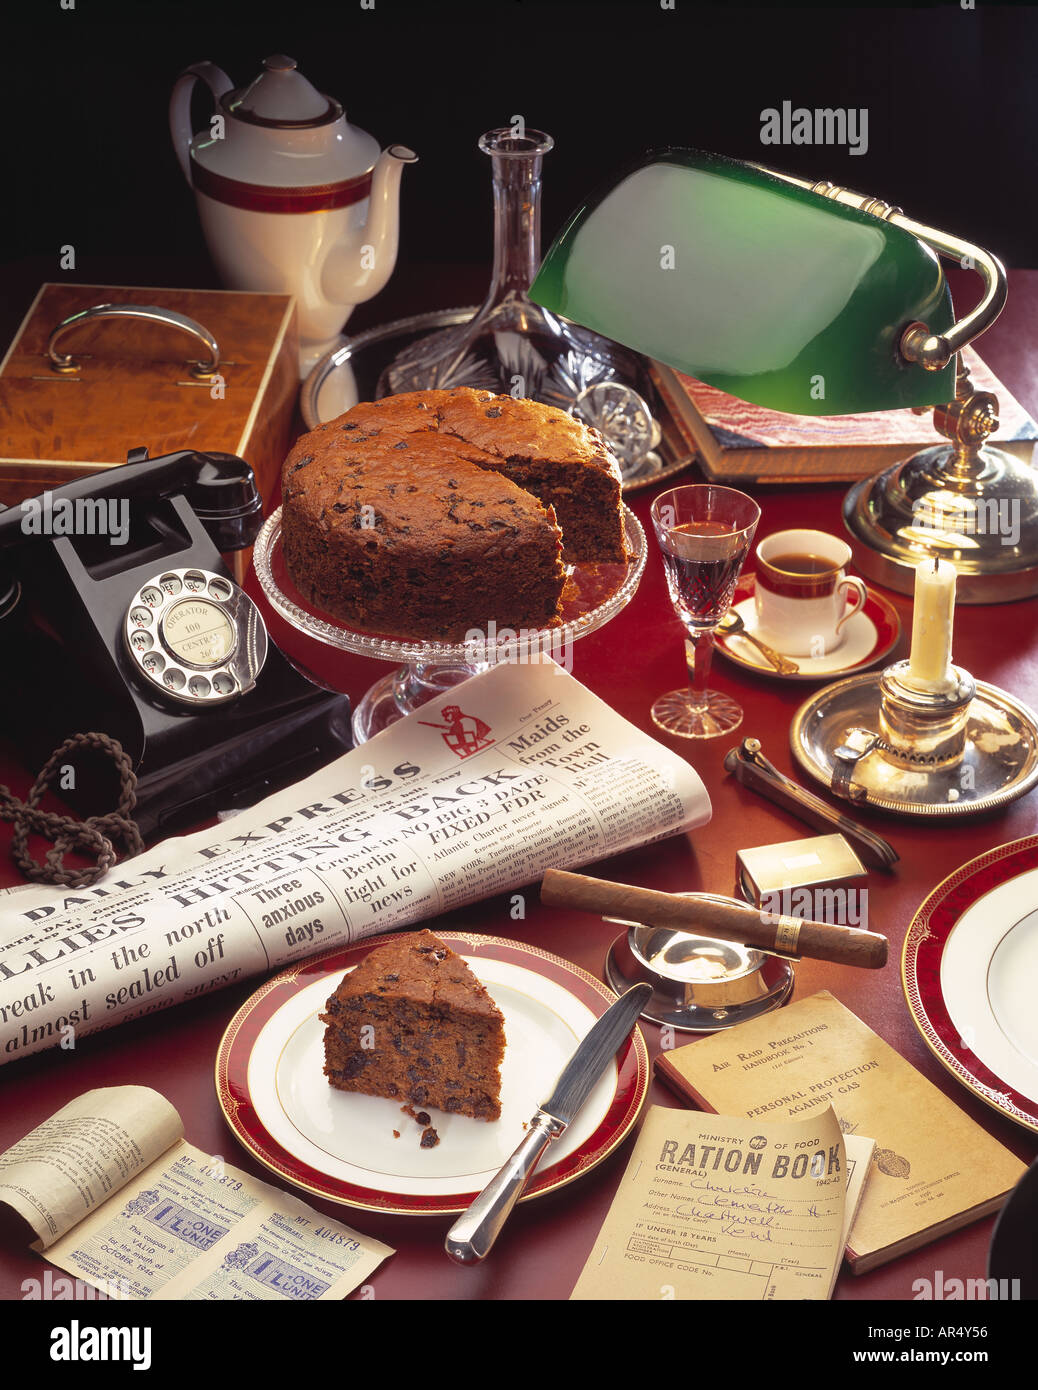 Wartime Cake Winston Churchill Setting With Cup Of Tea Newspaper ...